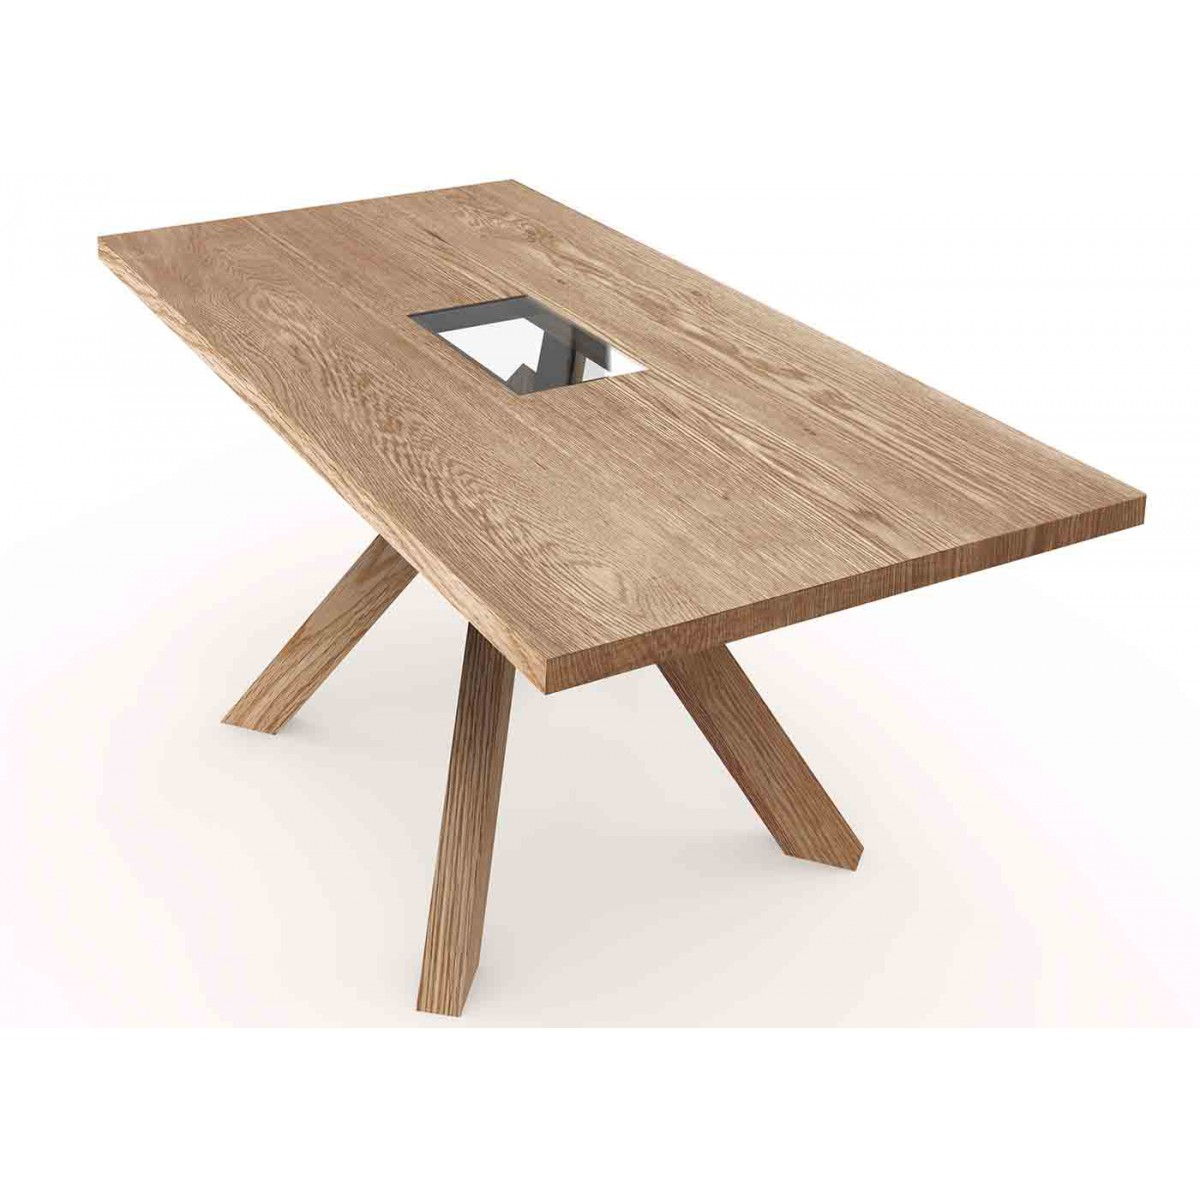 Table de repas en bois design scandinave sign e js filiber - Table moderne bois ...